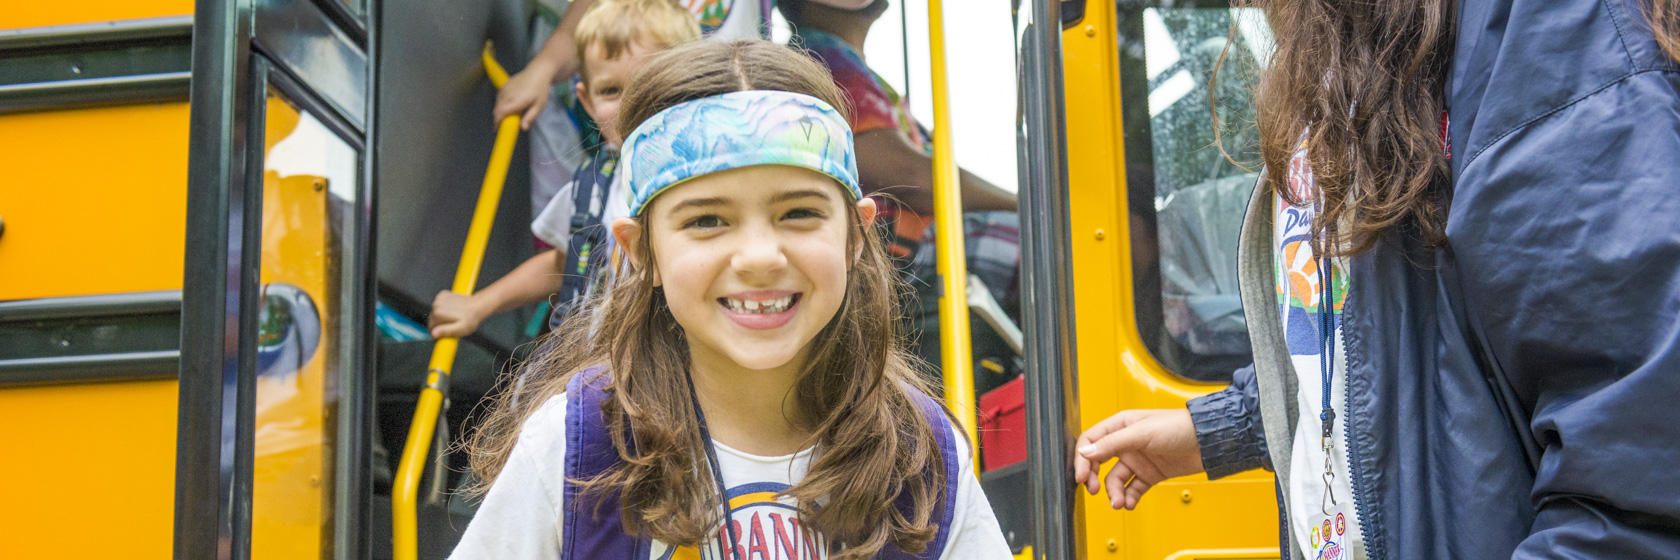 Camper smiling as she gets off the bus